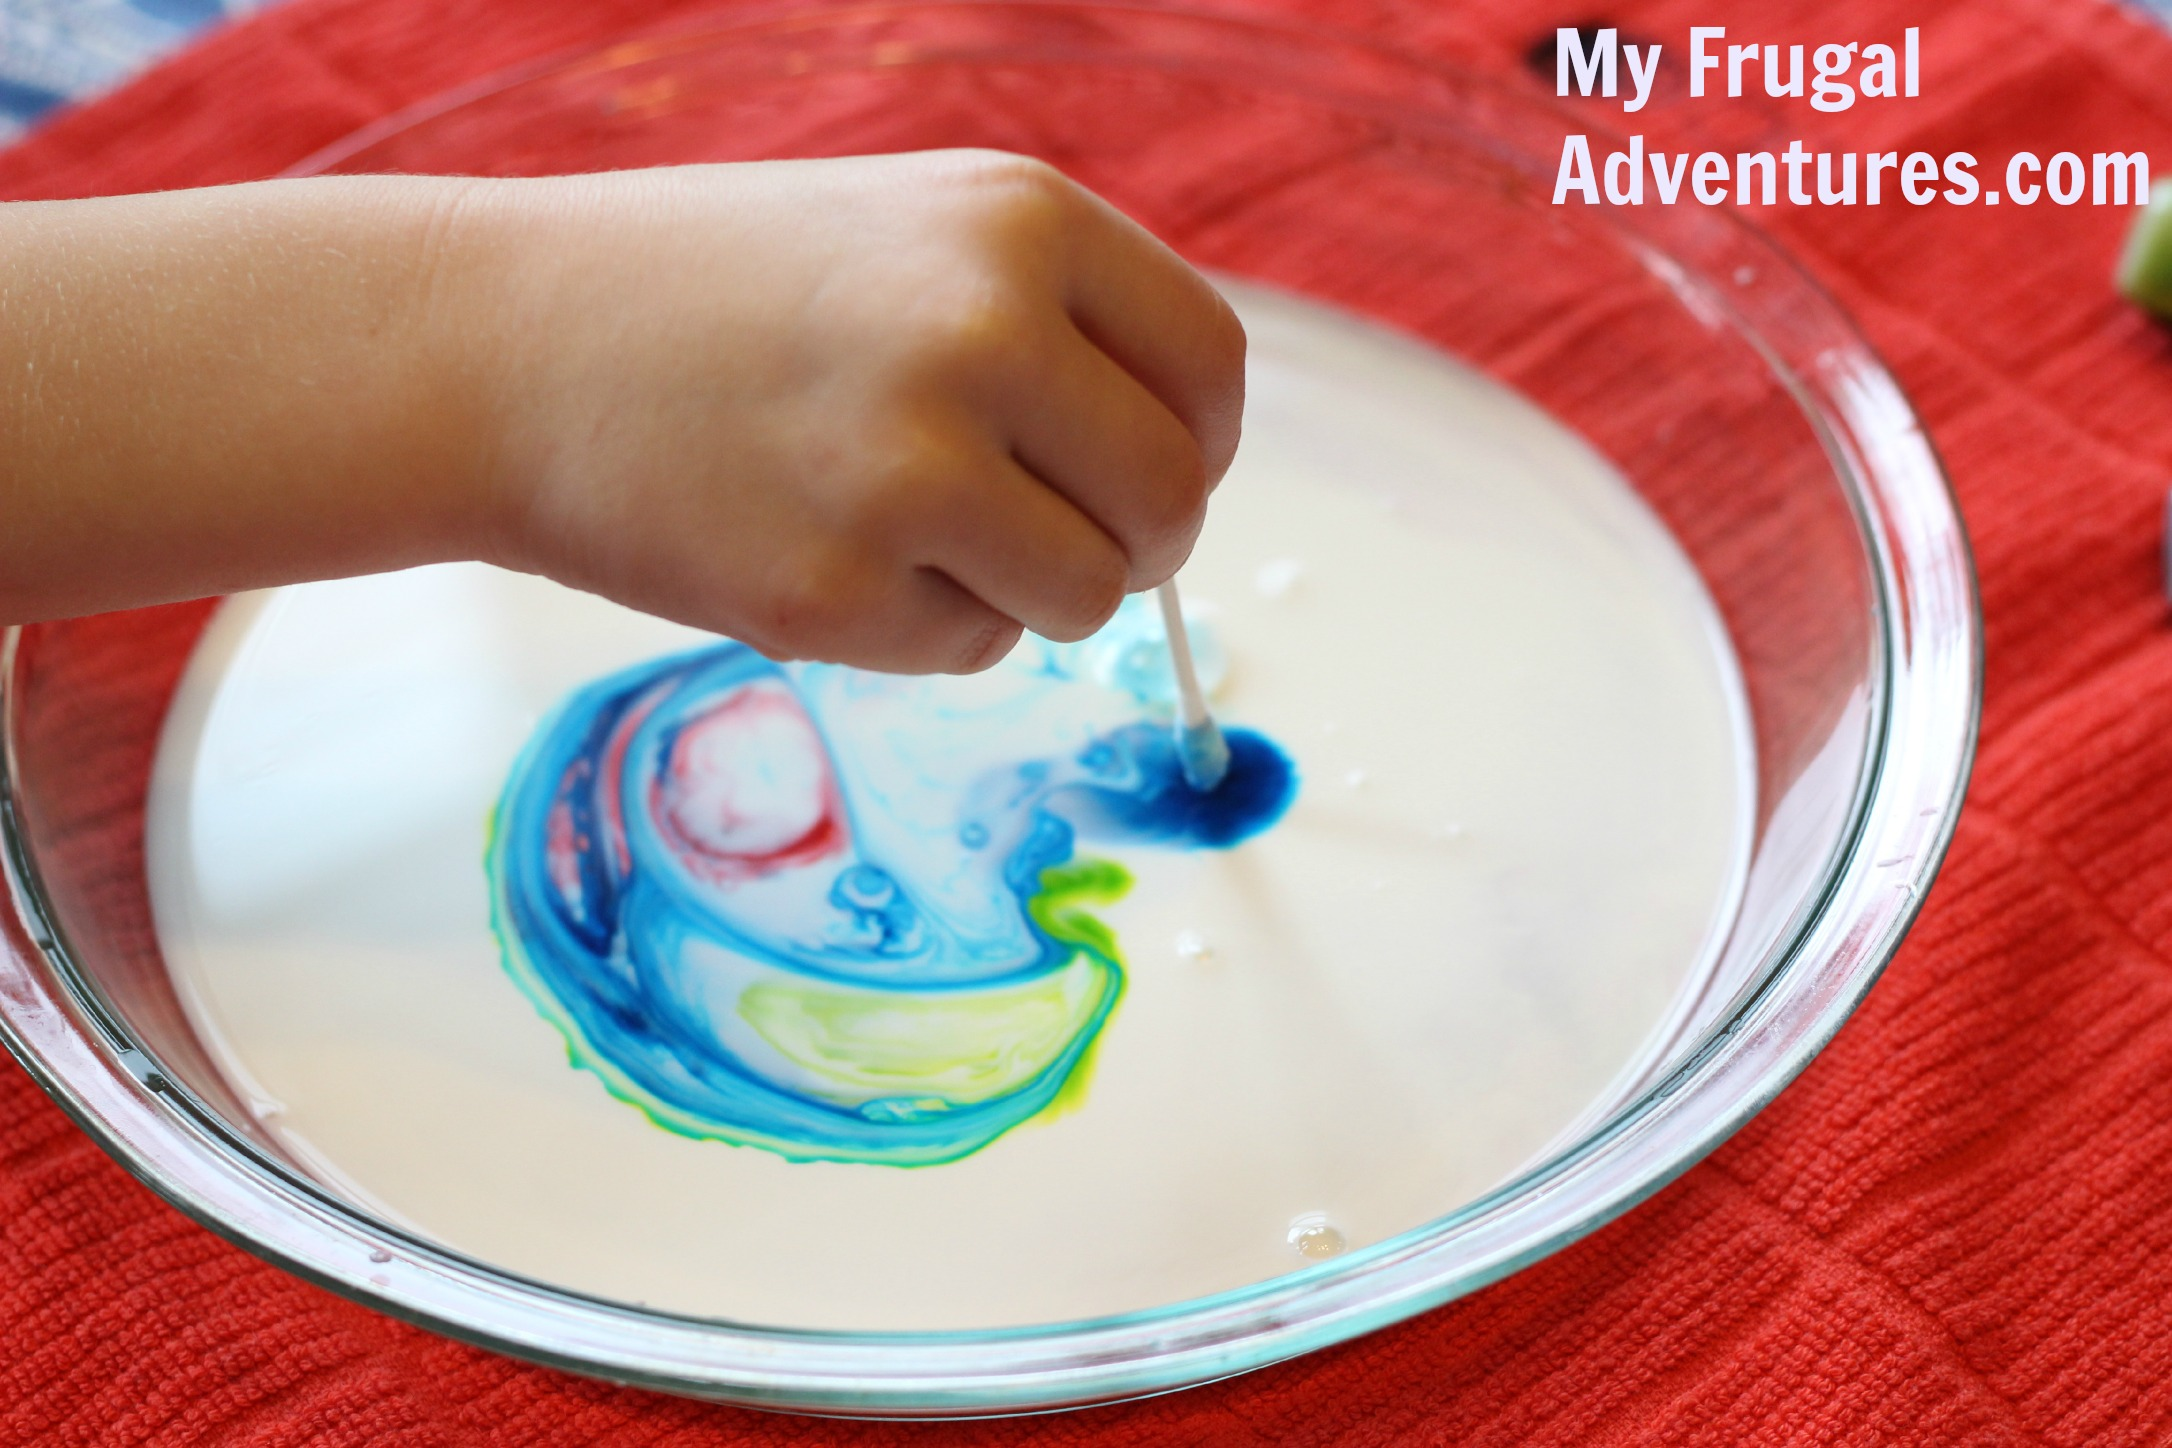 Easy Milk Paint Craft for Kids - My Frugal Adventures